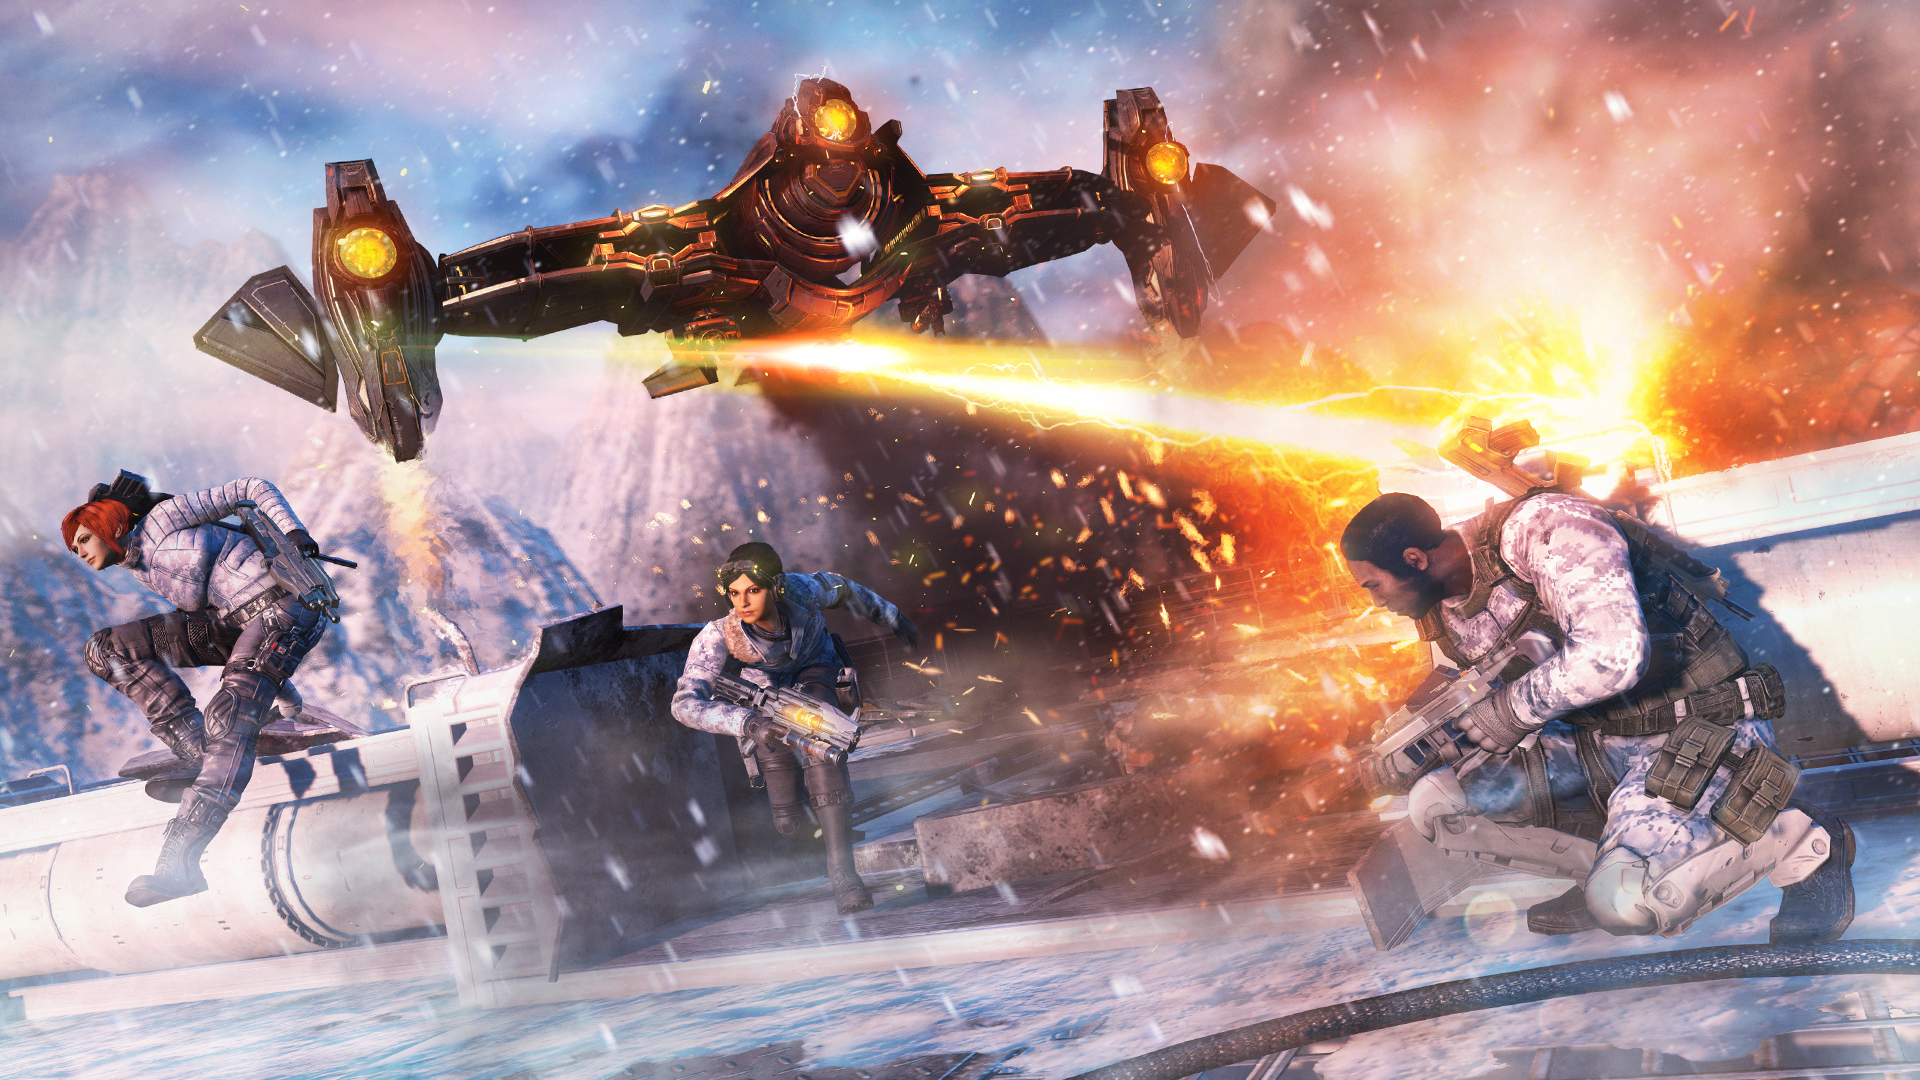 fuse xbox 360 game preview: fuse - rocket chainsaw